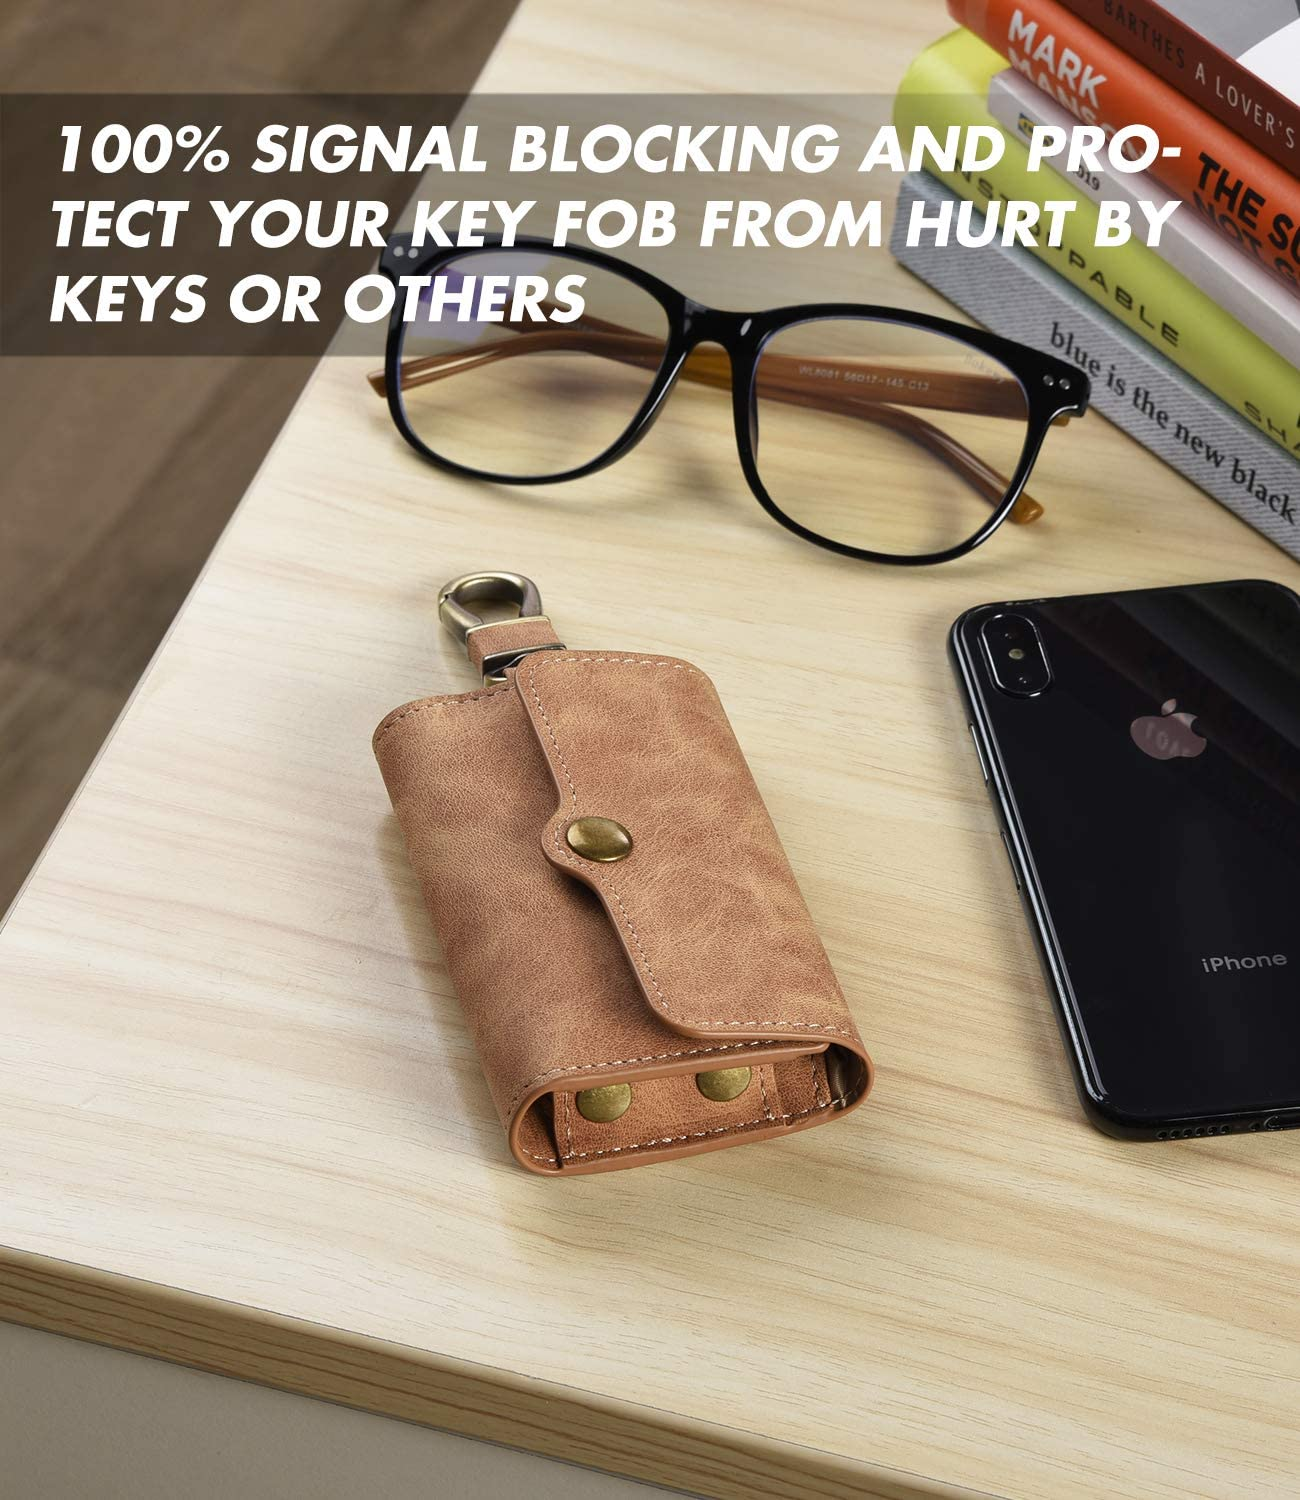 Faraday Bags for Car Key Fob Protector Signal Blocker and Keys Chain Handmade Multifunction Brown PU Leather Key Holder Bag with Strong Metal Hook